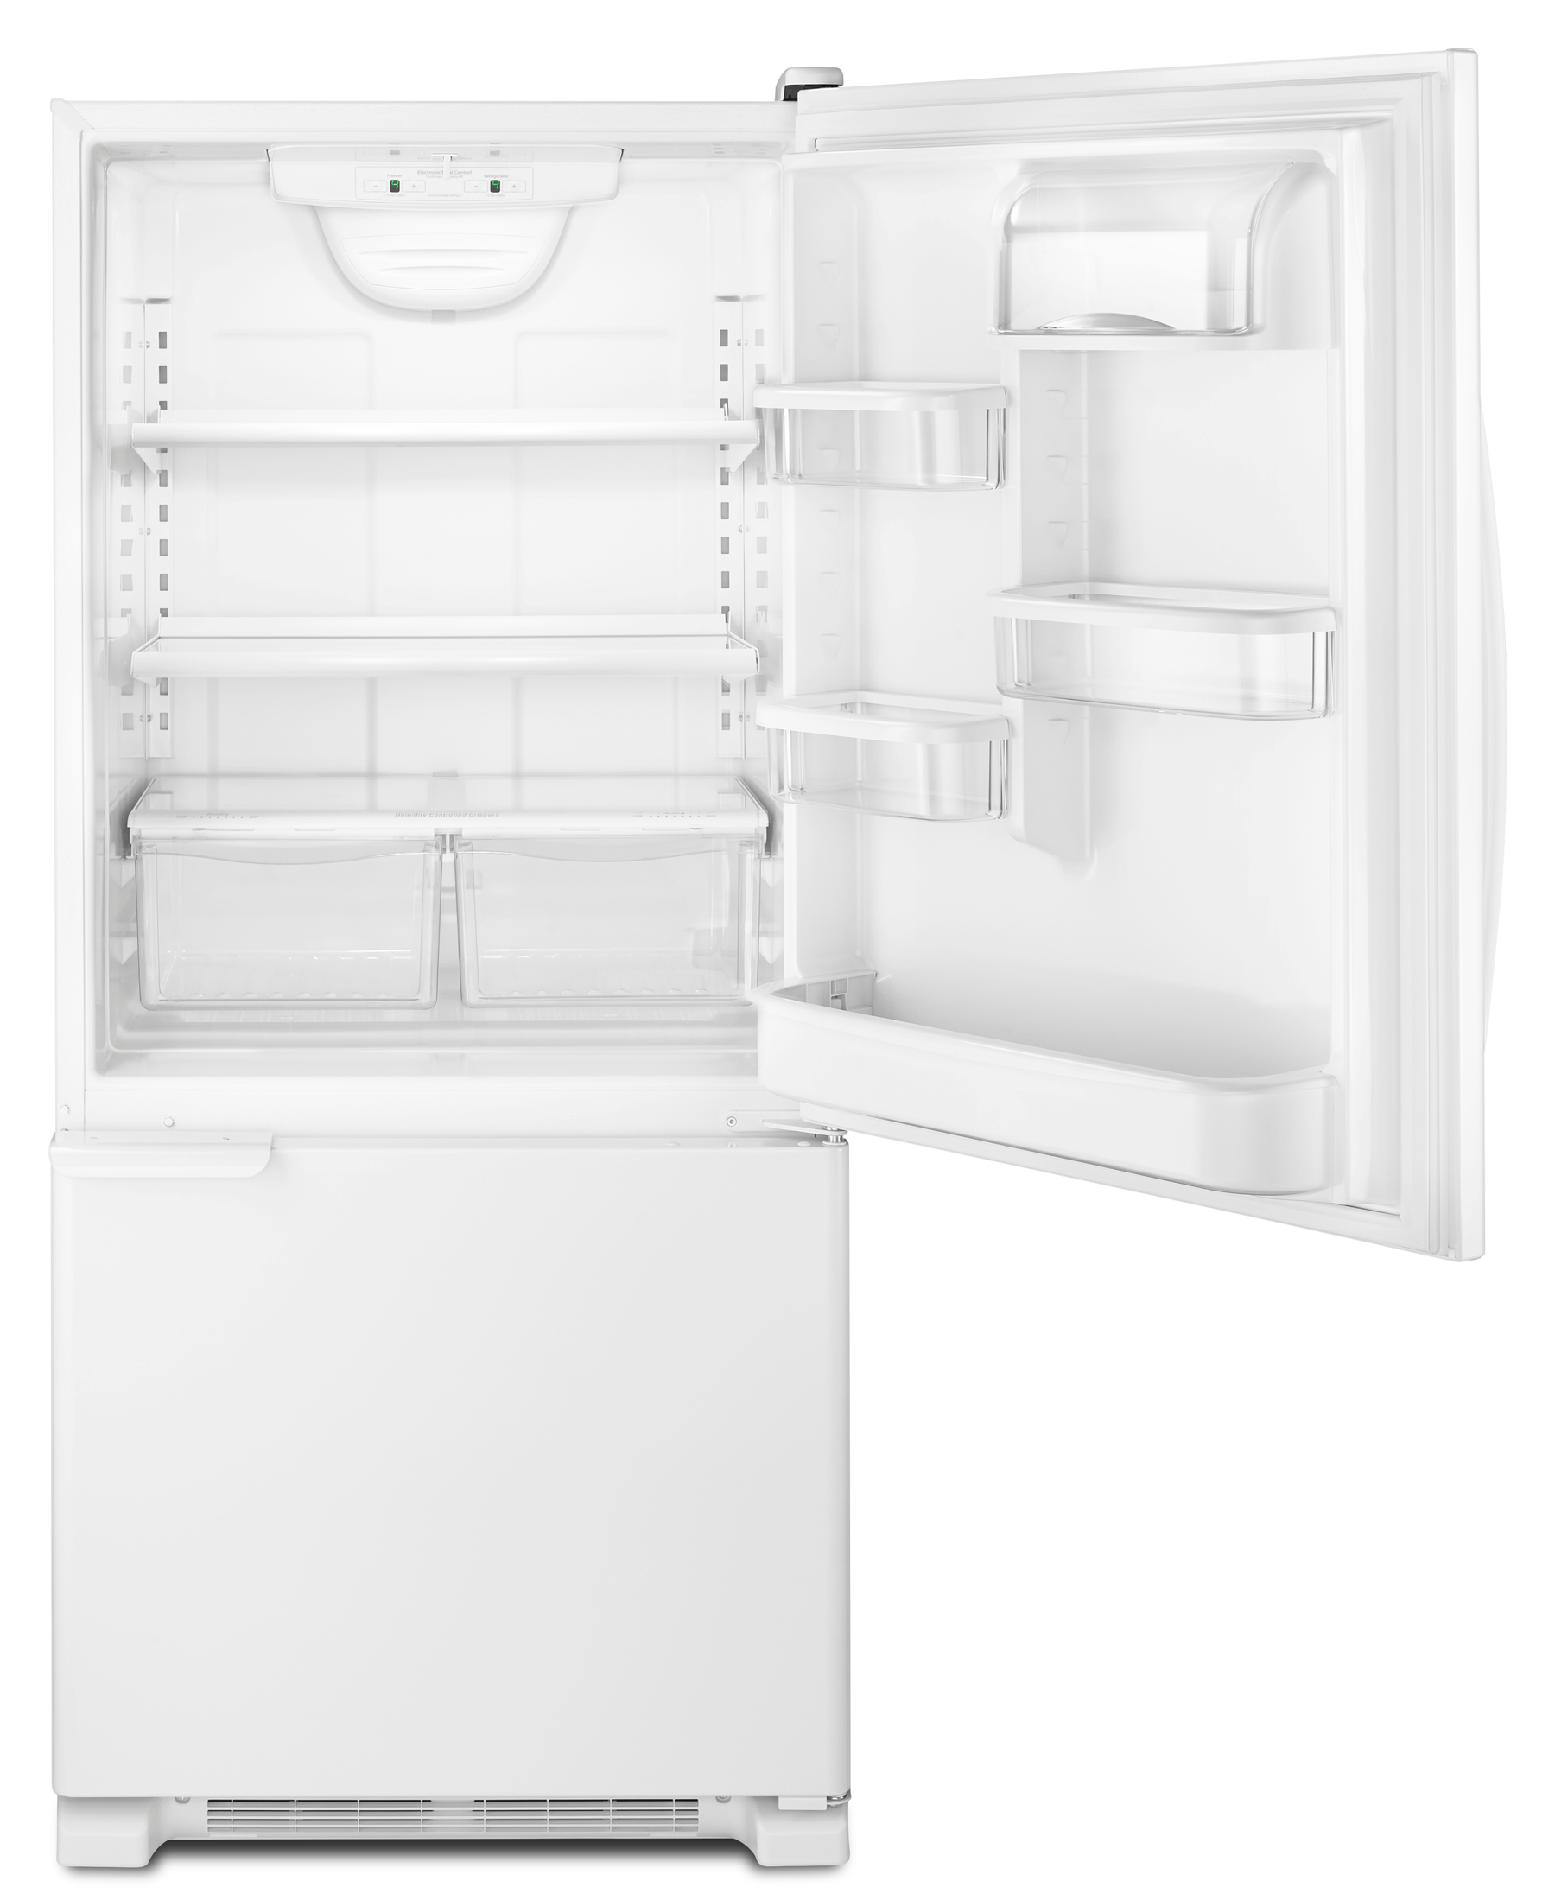 Kenmore 69312 19 cu. ft. Bottom-Freezer Refrigerator - White